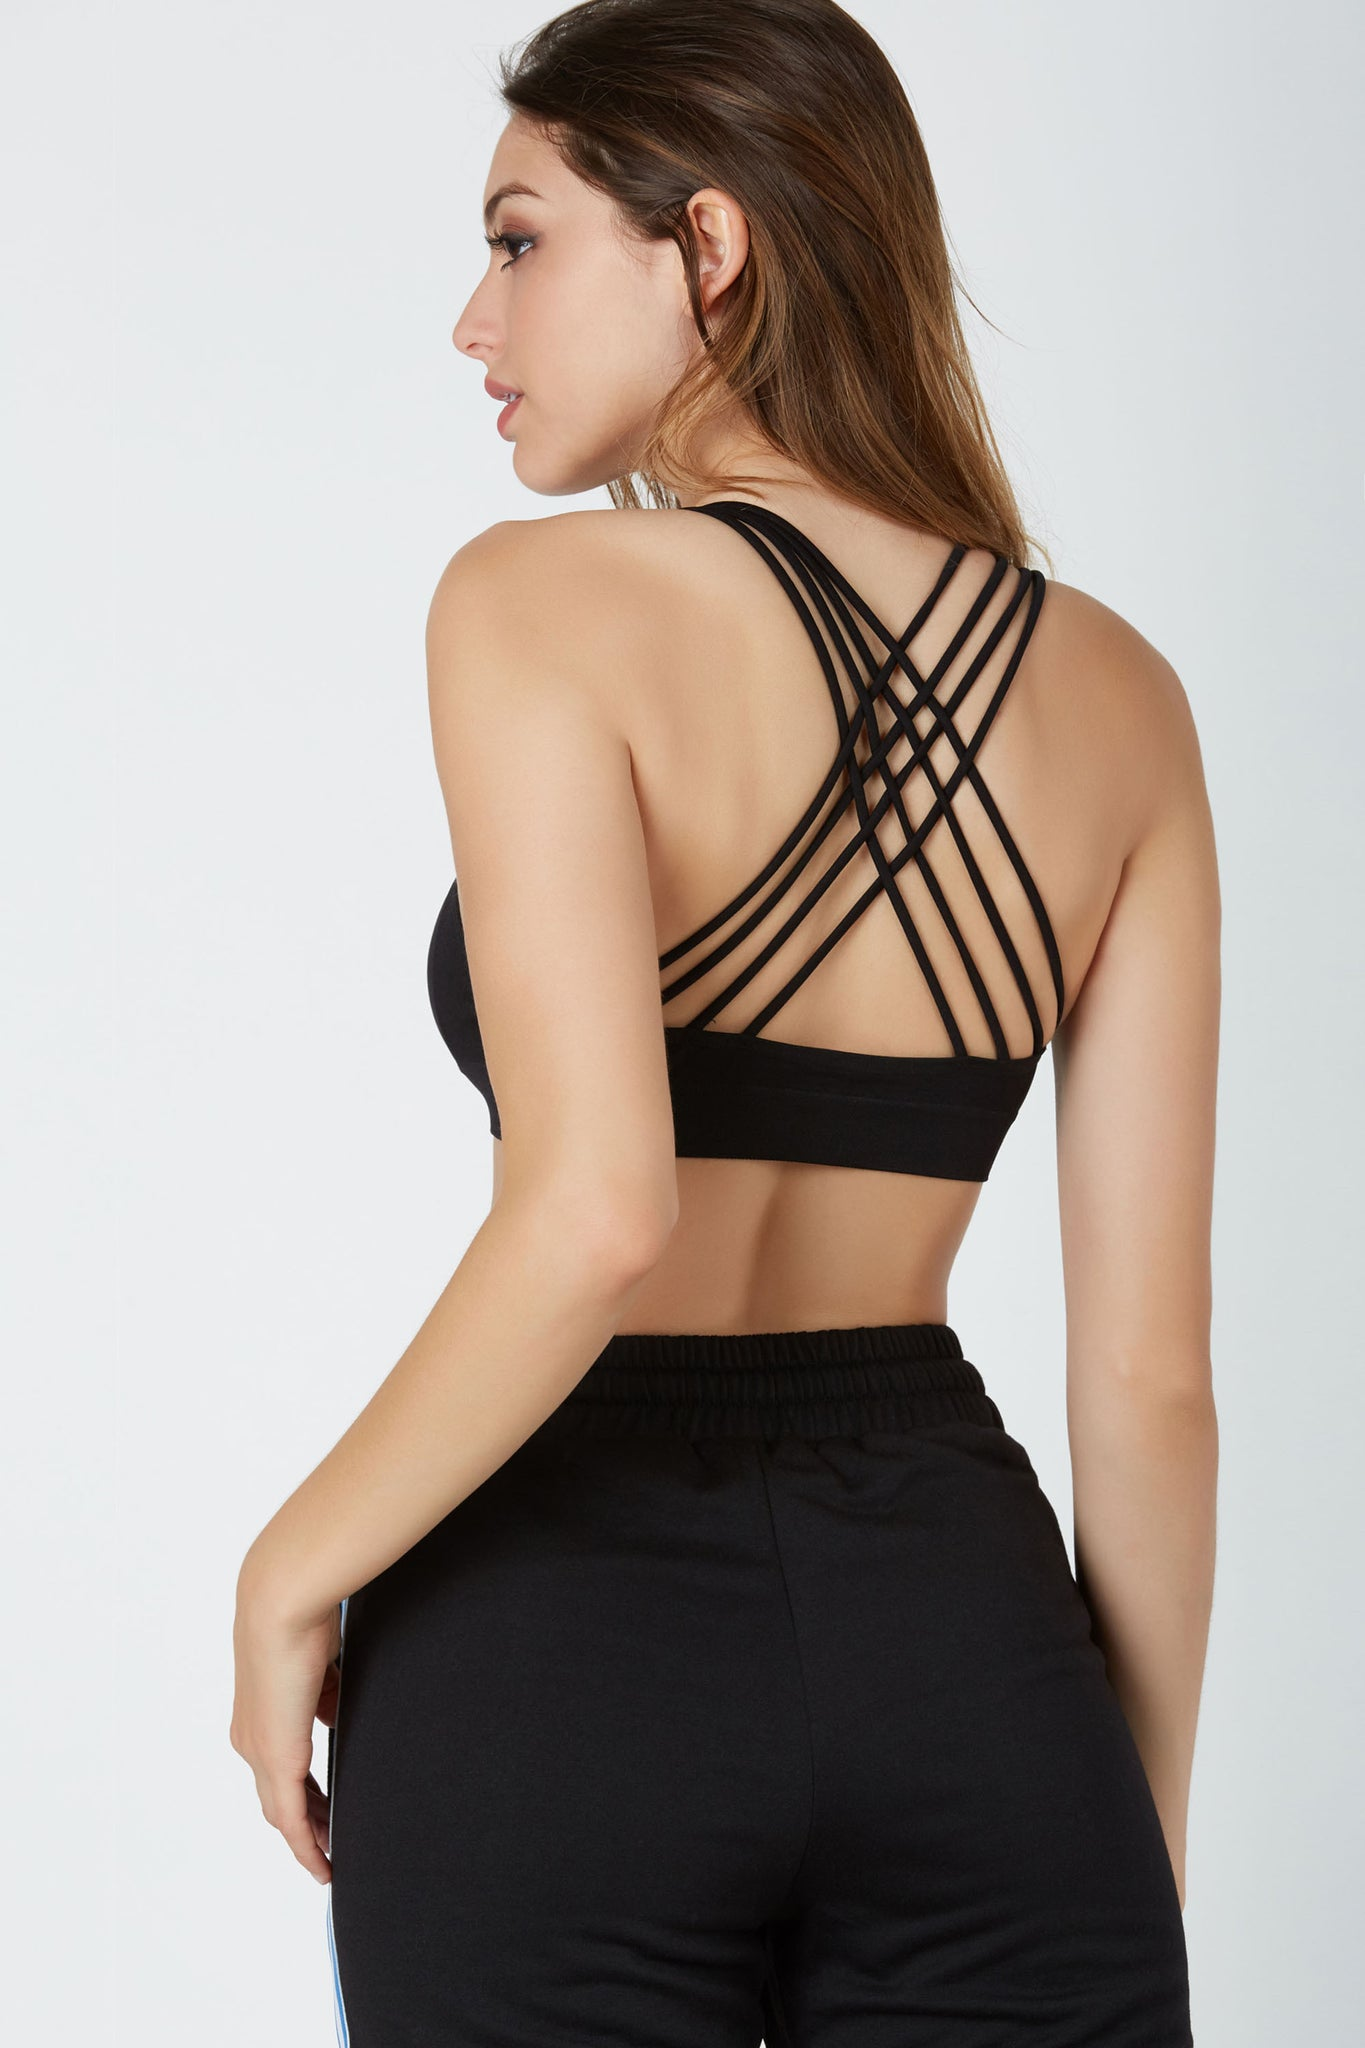 Comfortable stetchy bralette with classic V-neckline. Open back with strappy caged design.